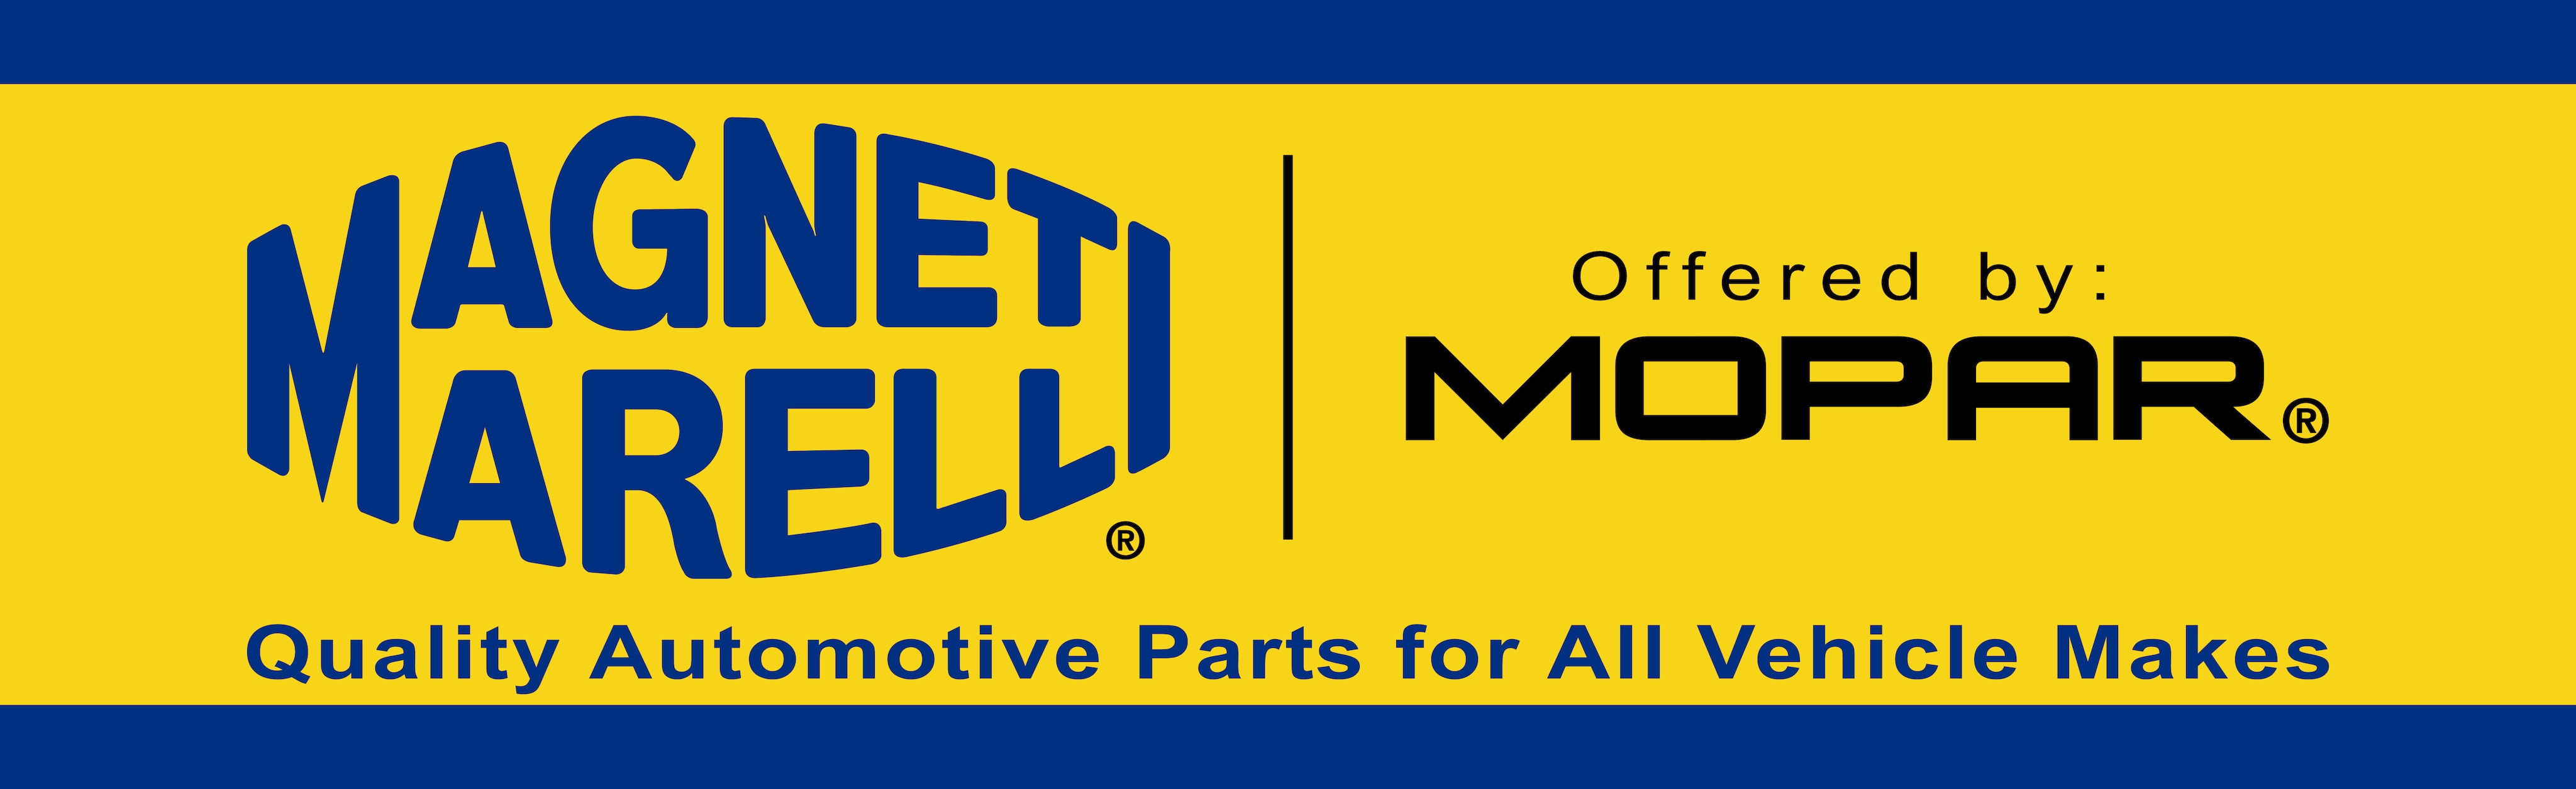 Magneti Marelli Auto Parts at Larry H Miller Chrysler Jeep Tucson